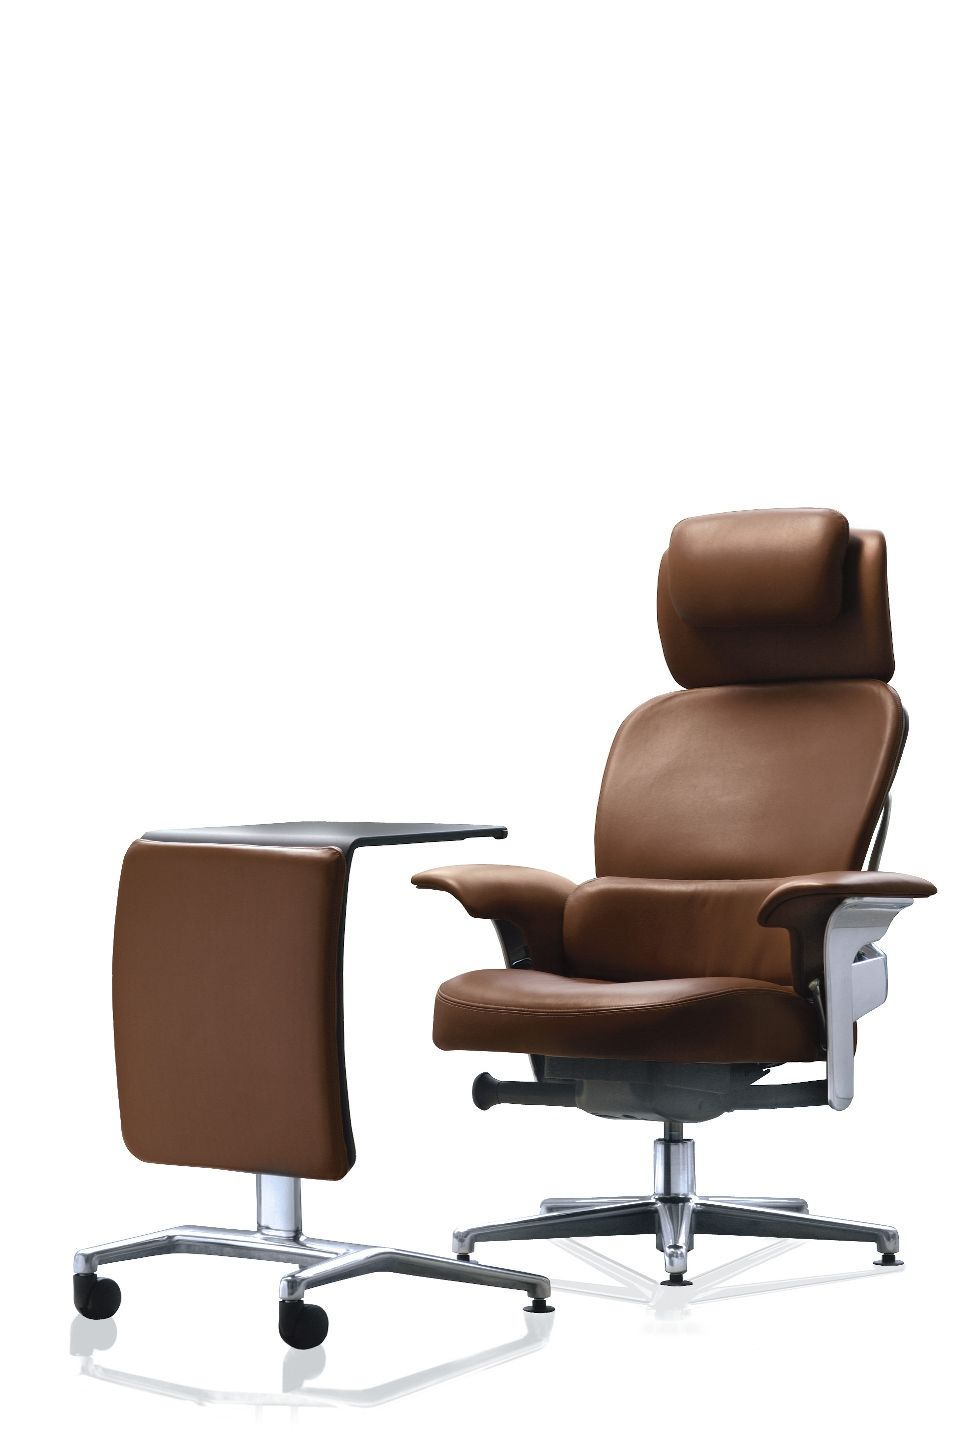 SteelCase Leap Work Lounge Chair with ottomandesk Cool